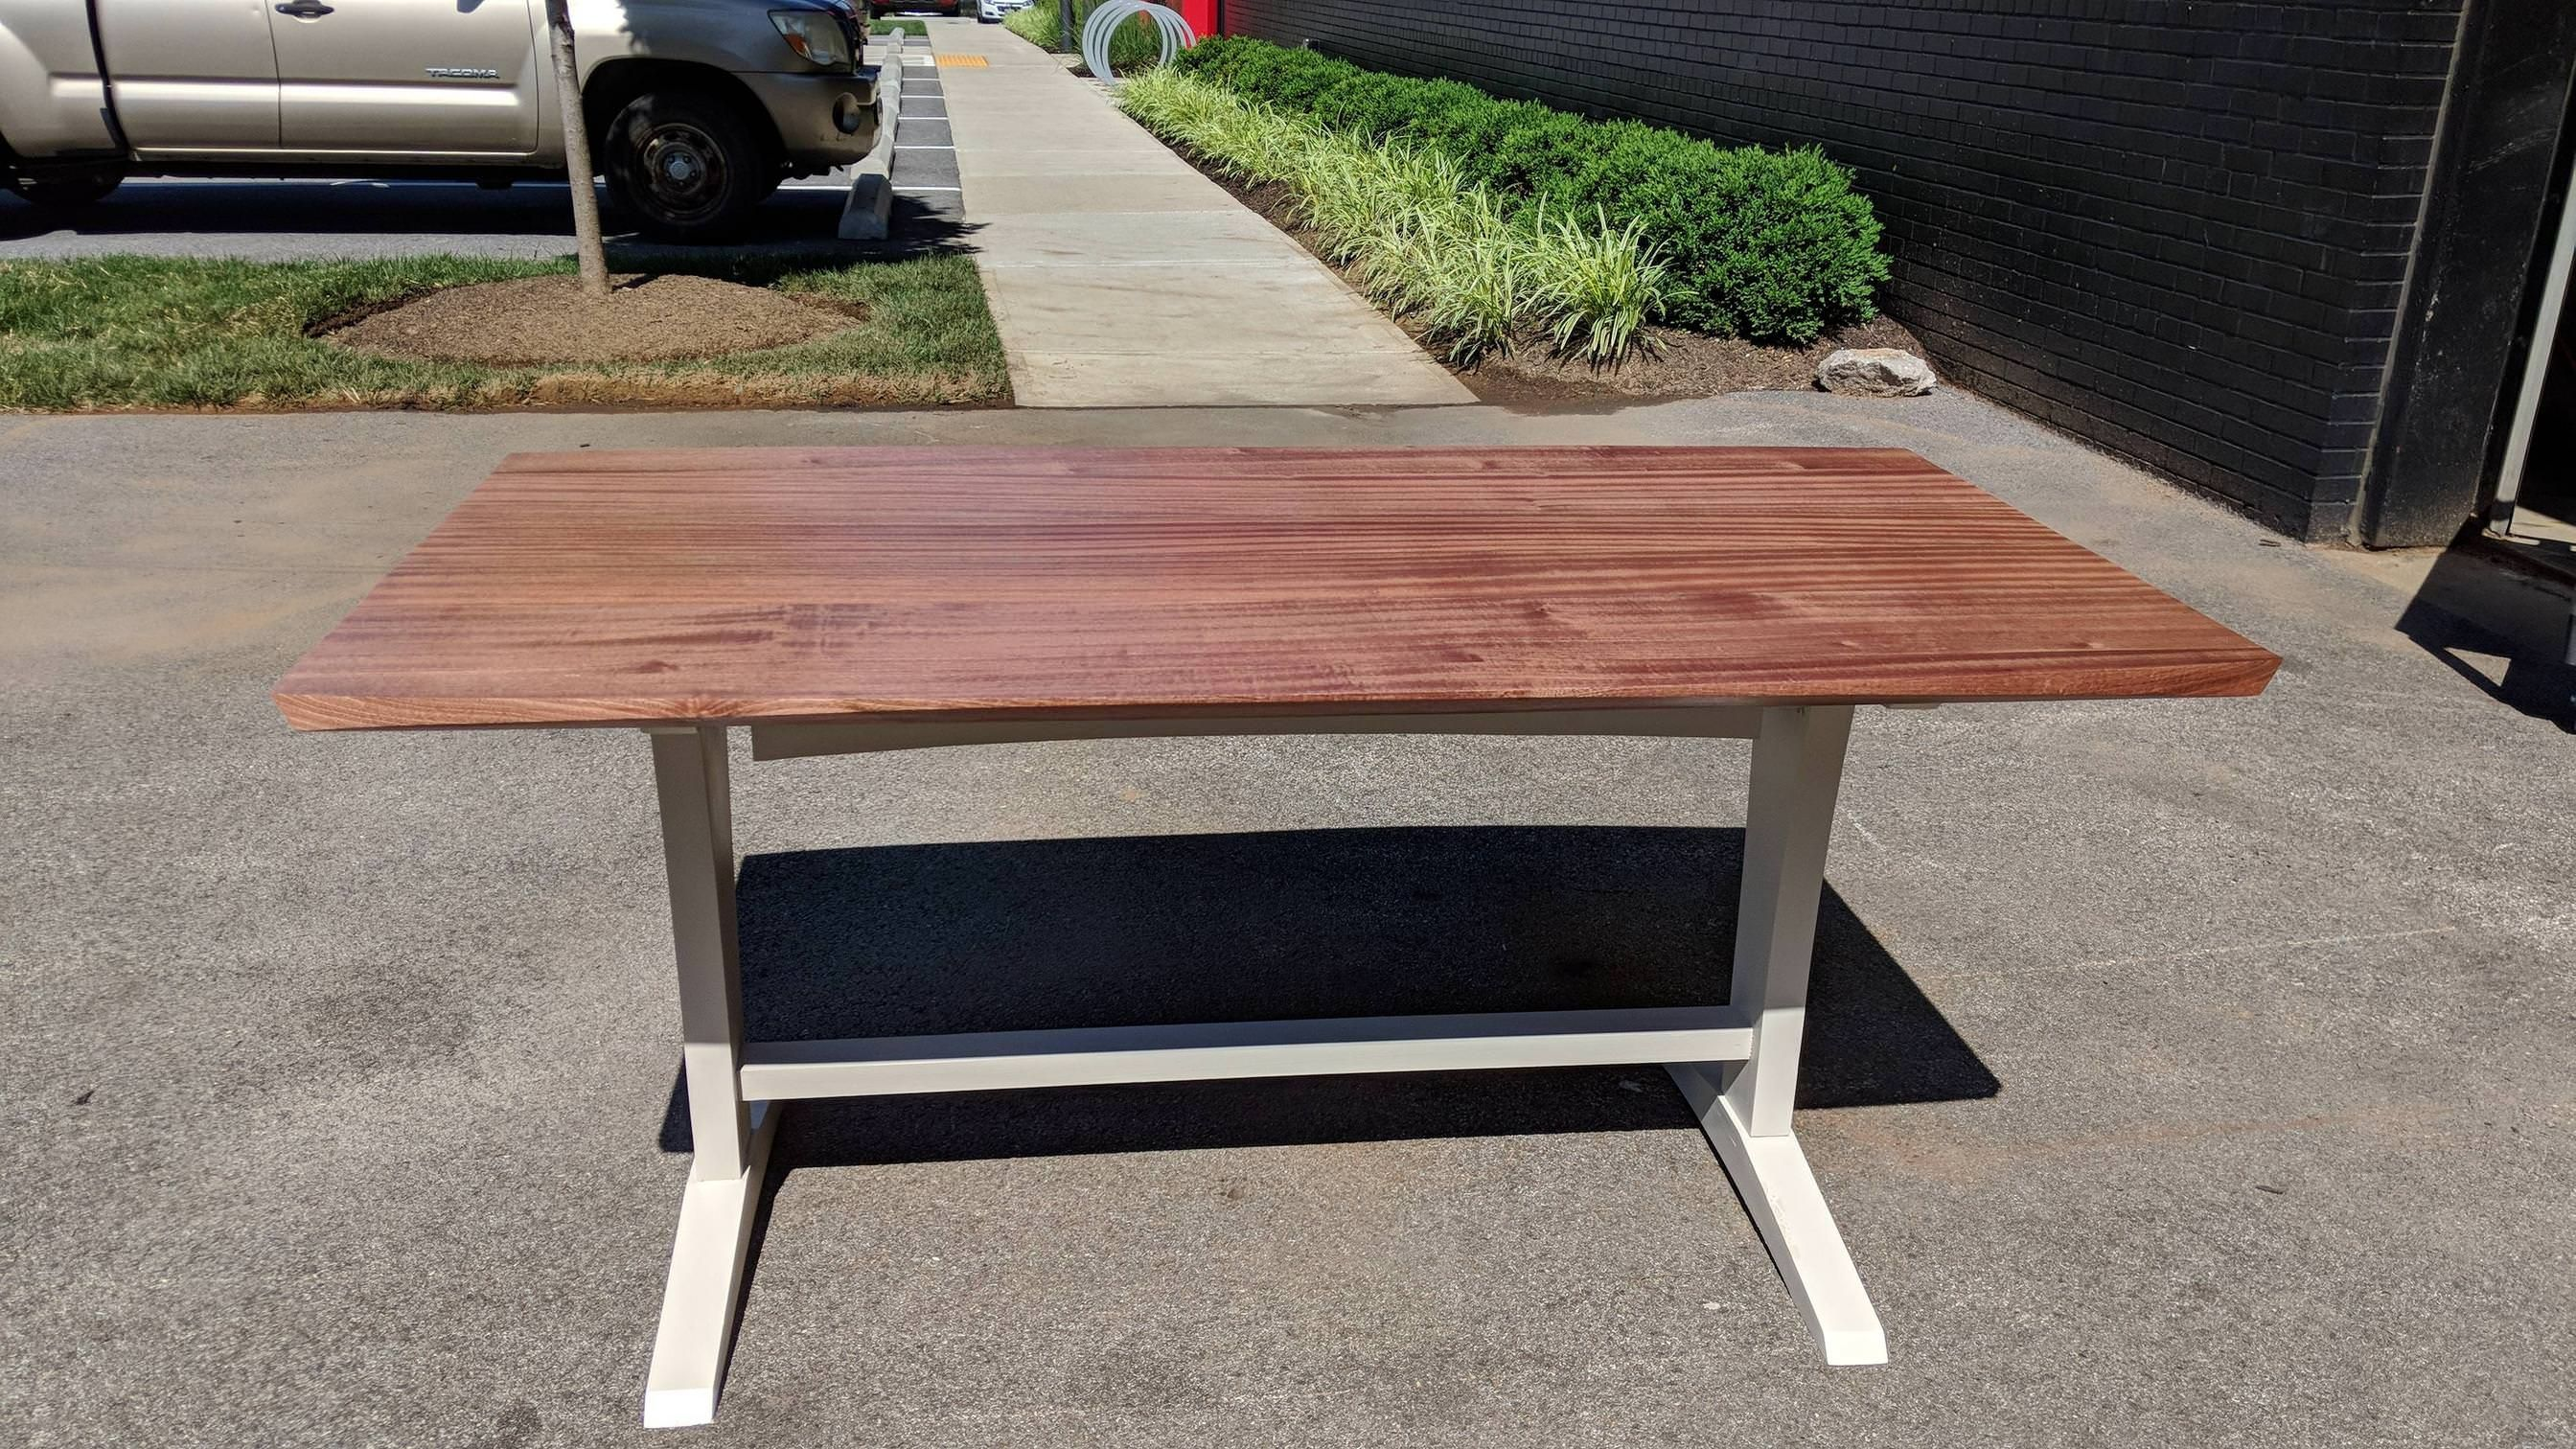 Trestle Table  Album In Comments Httpsifttt2L6Hpb6